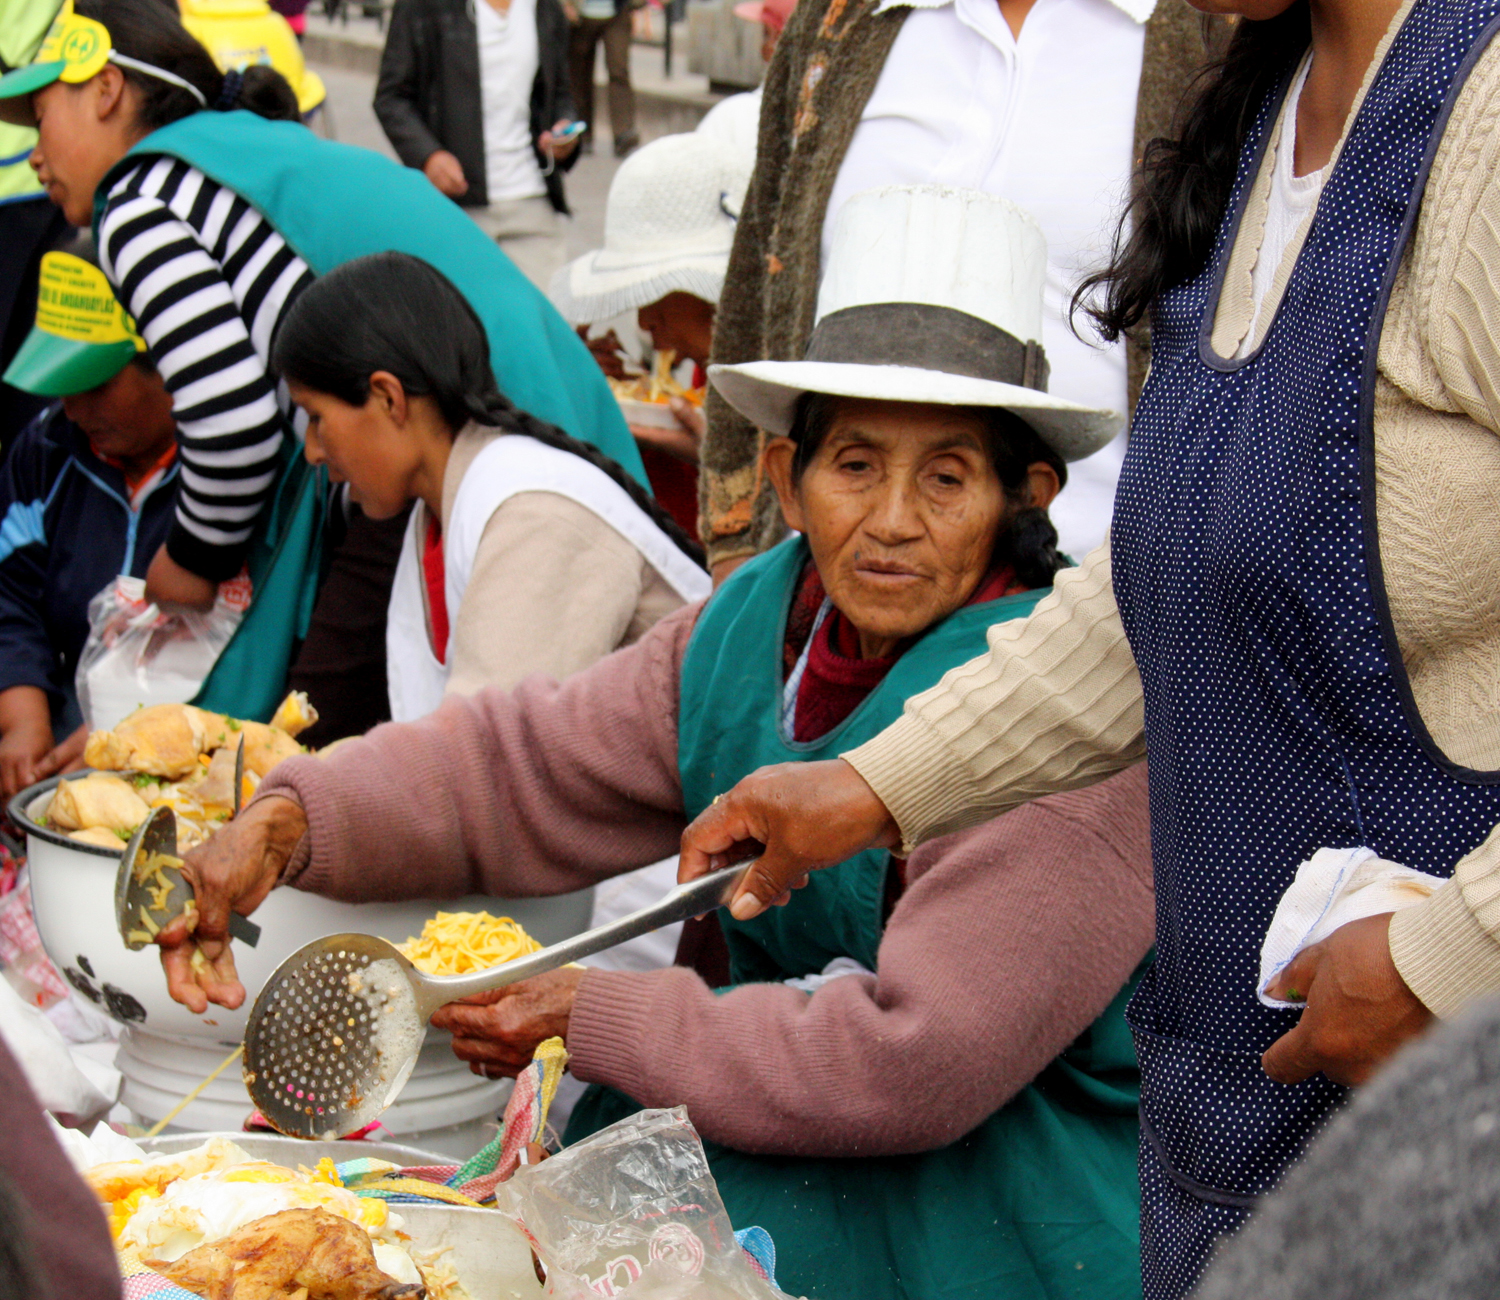 A woman serving food at the Inti Raymi Festival in Cusco.